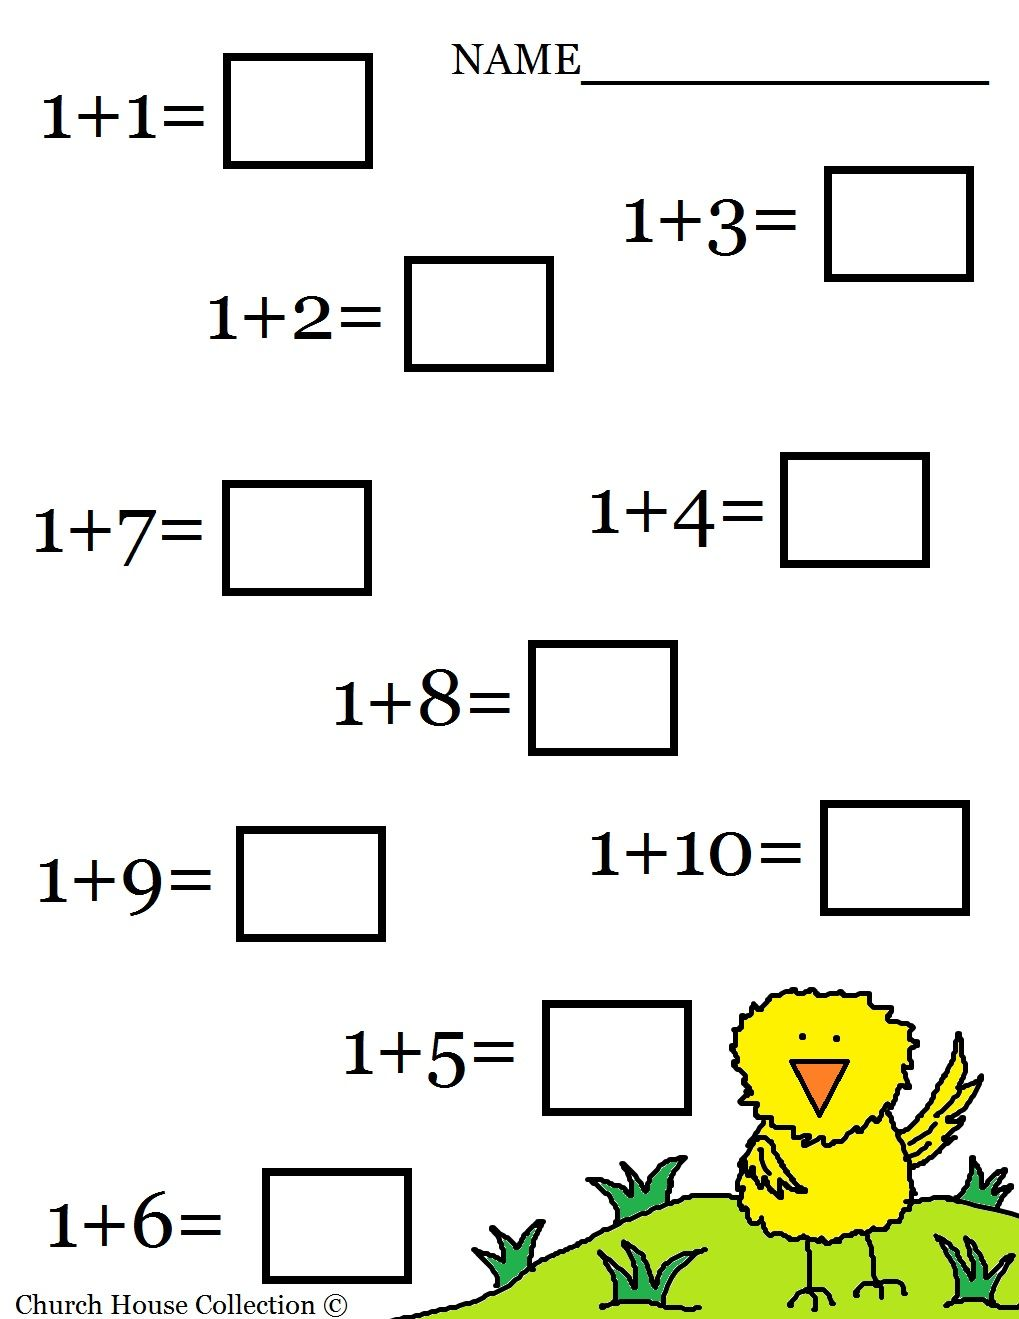 Aldiablosus  Pleasing  Images About Worksheets  Math On Pinterest  Math Sheets  With Handsome  Images About Worksheets  Math On Pinterest  Math Sheets Math Worksheets For Kindergarten And Simple Addition With Amazing Kinder Phonics Worksheets Also Math Facts Printable Worksheets In Addition Pre K Alphabet Tracing Worksheets And Free Pictograph Worksheets As Well As Sensory Detail Worksheet Additionally Order Of Operations With Parentheses Worksheets From Pinterestcom With Aldiablosus  Handsome  Images About Worksheets  Math On Pinterest  Math Sheets  With Amazing  Images About Worksheets  Math On Pinterest  Math Sheets Math Worksheets For Kindergarten And Simple Addition And Pleasing Kinder Phonics Worksheets Also Math Facts Printable Worksheets In Addition Pre K Alphabet Tracing Worksheets From Pinterestcom